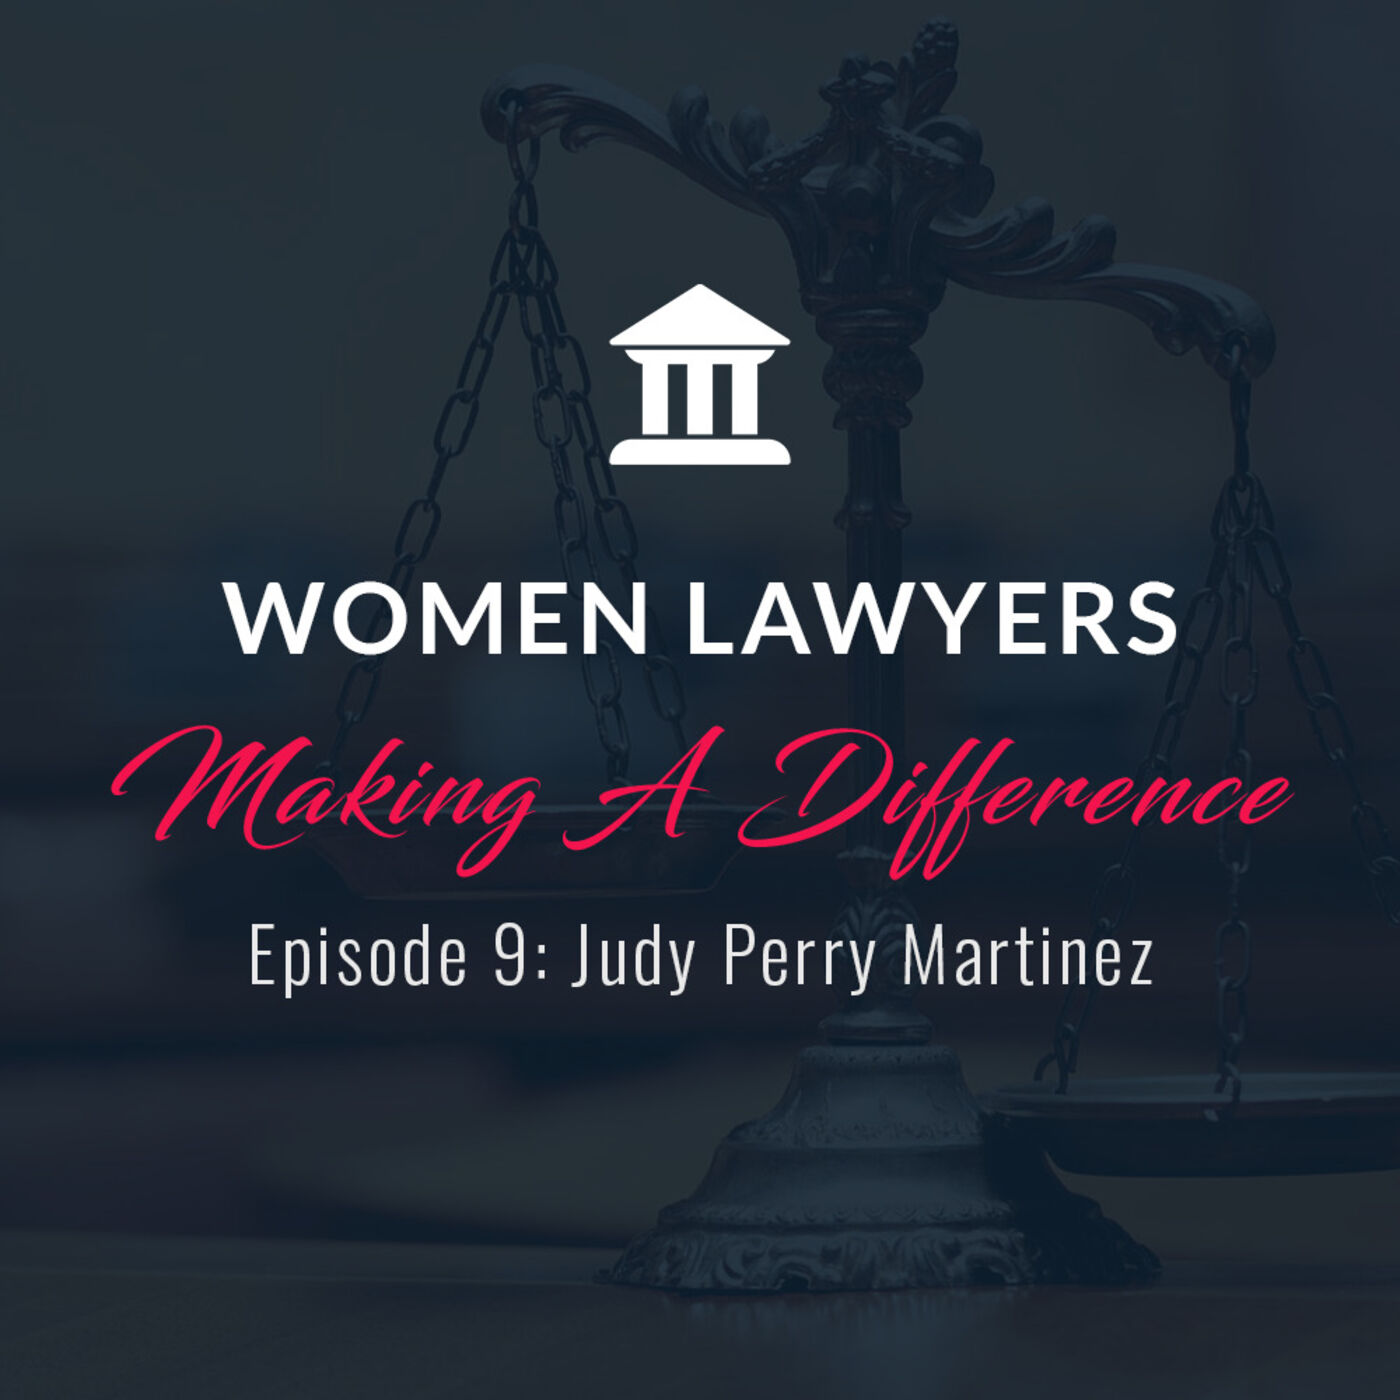 Women Lawyers Making A Difference: Interview with Judy Perry Martinez